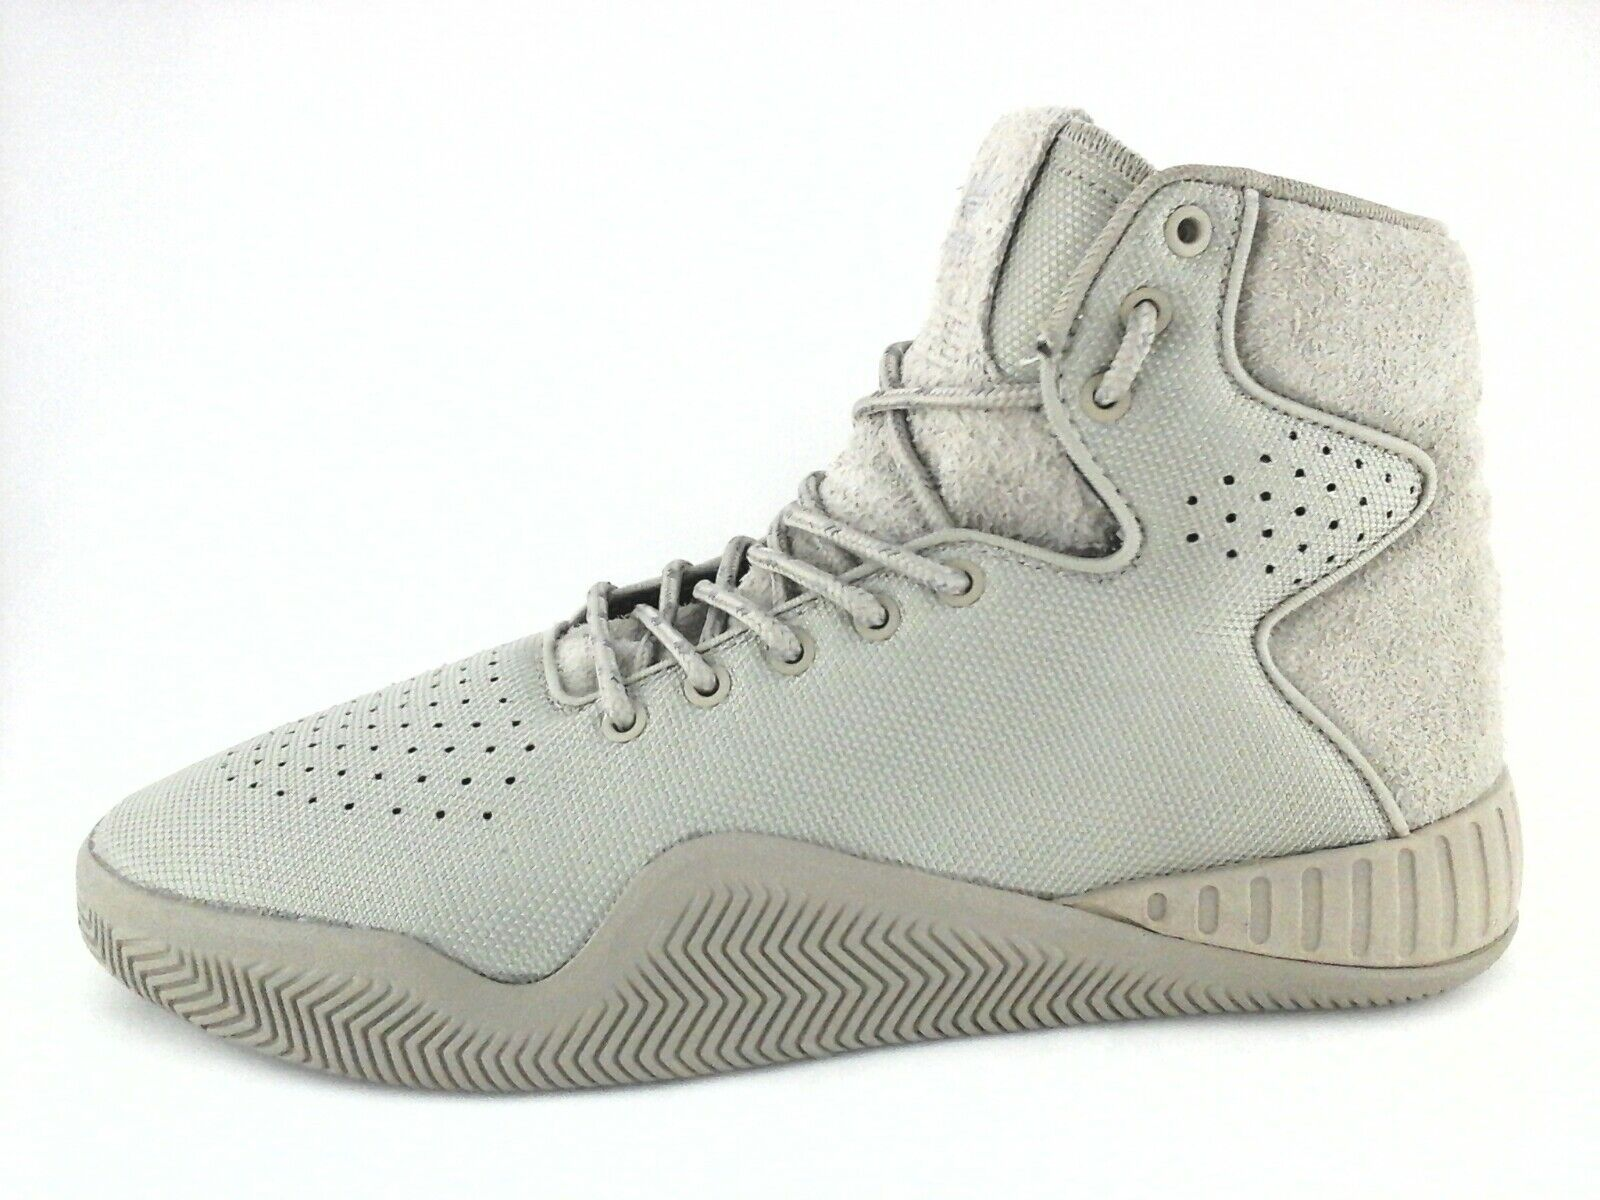 8cebb2fb9241 ... coupon for 160 adidas tubular bb2386 mens high top shoes desert green  us 9.5 eu 43